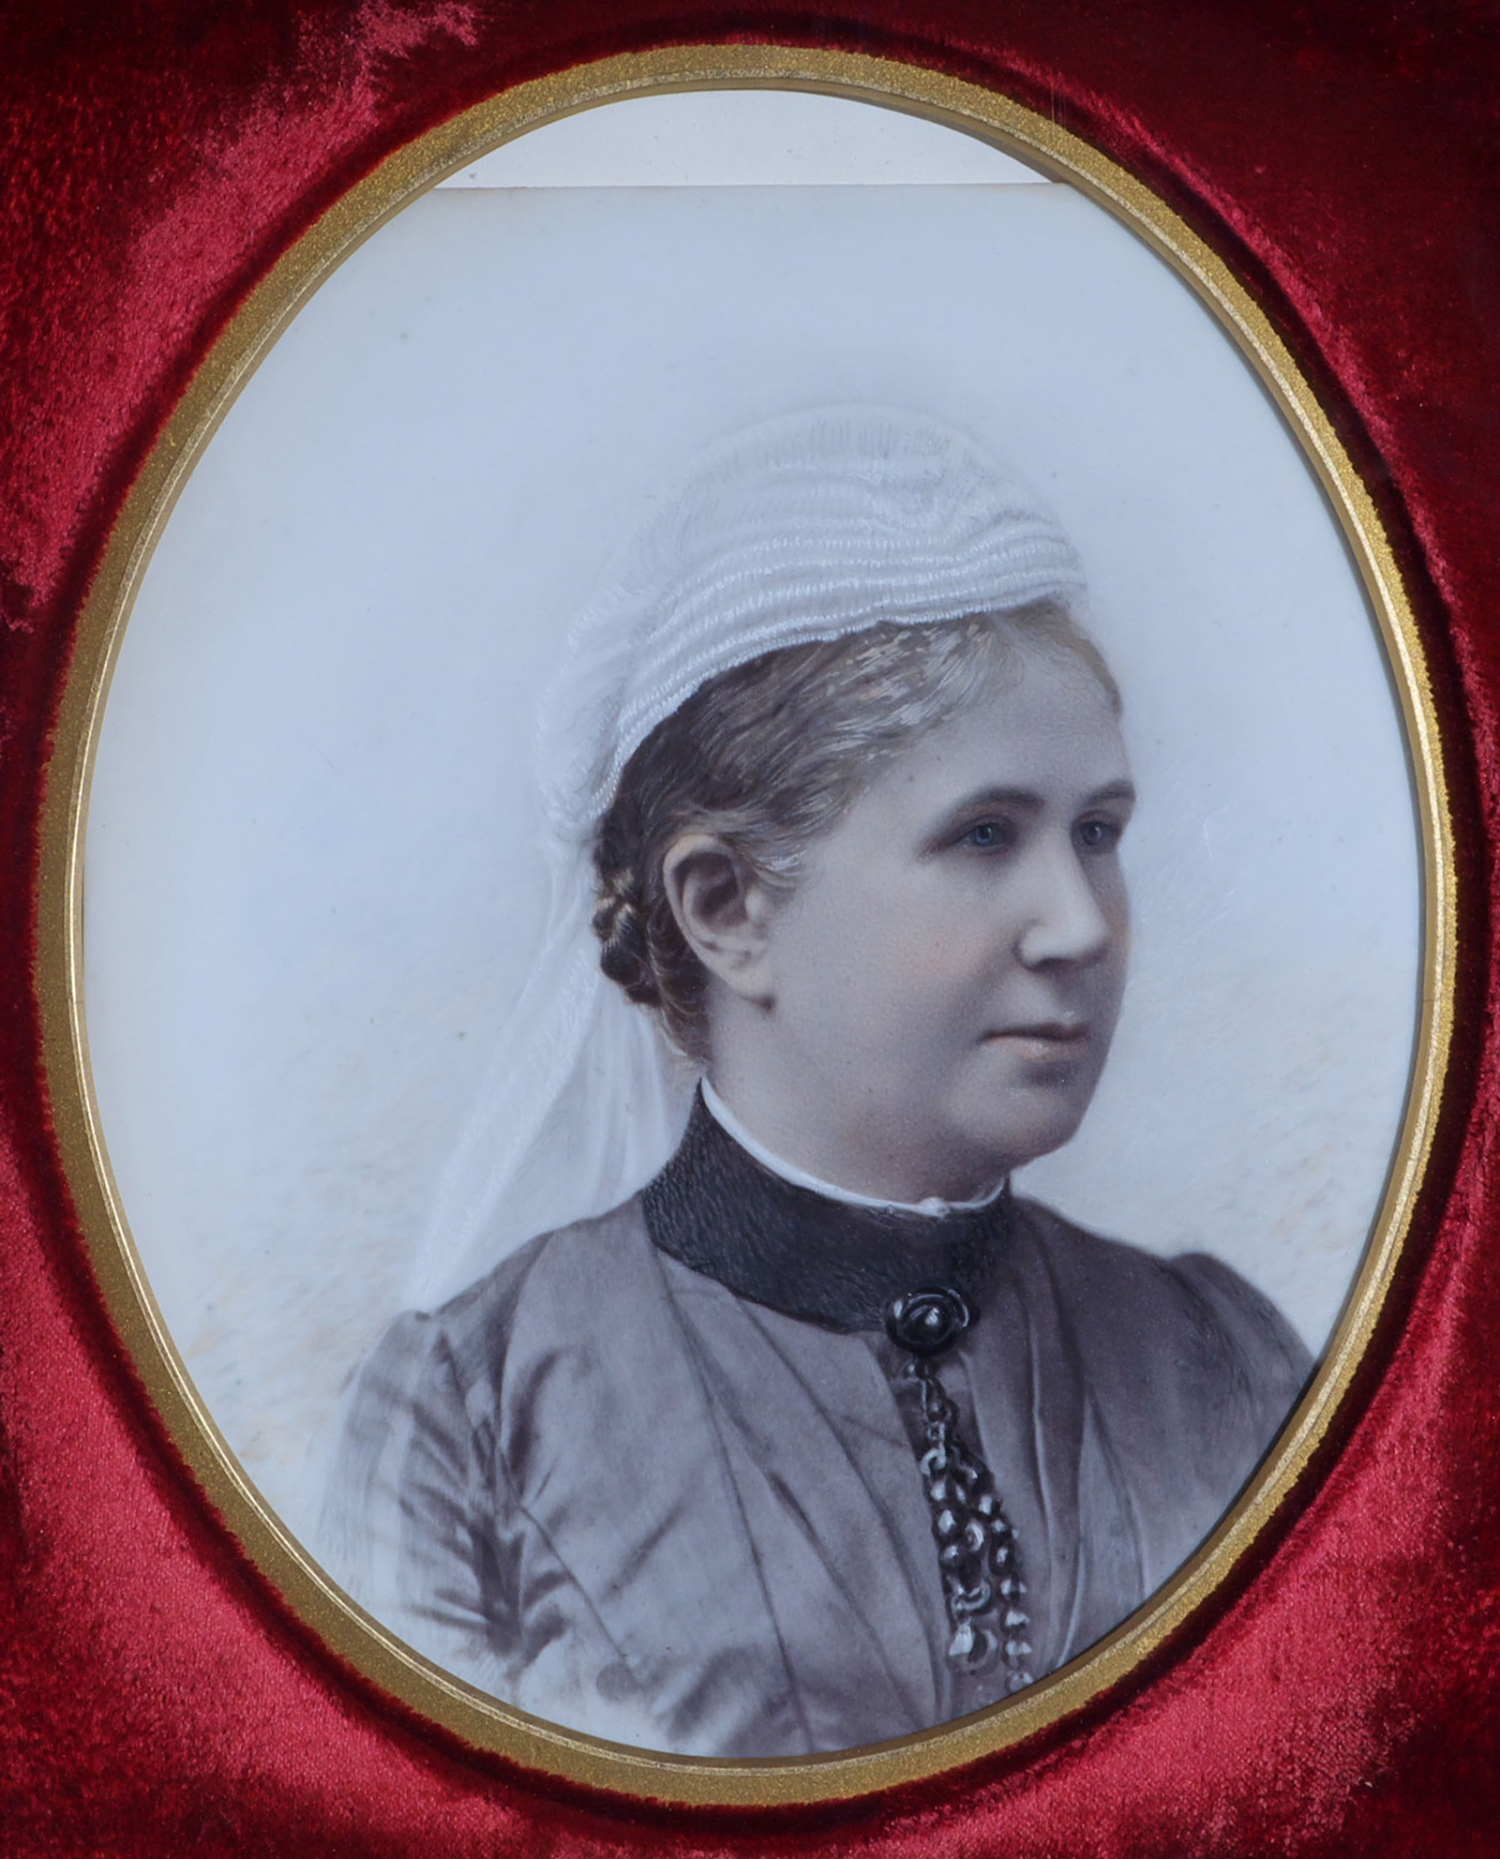 Tinted portrait photograph on opal glass of Elizabeth Buchanan.